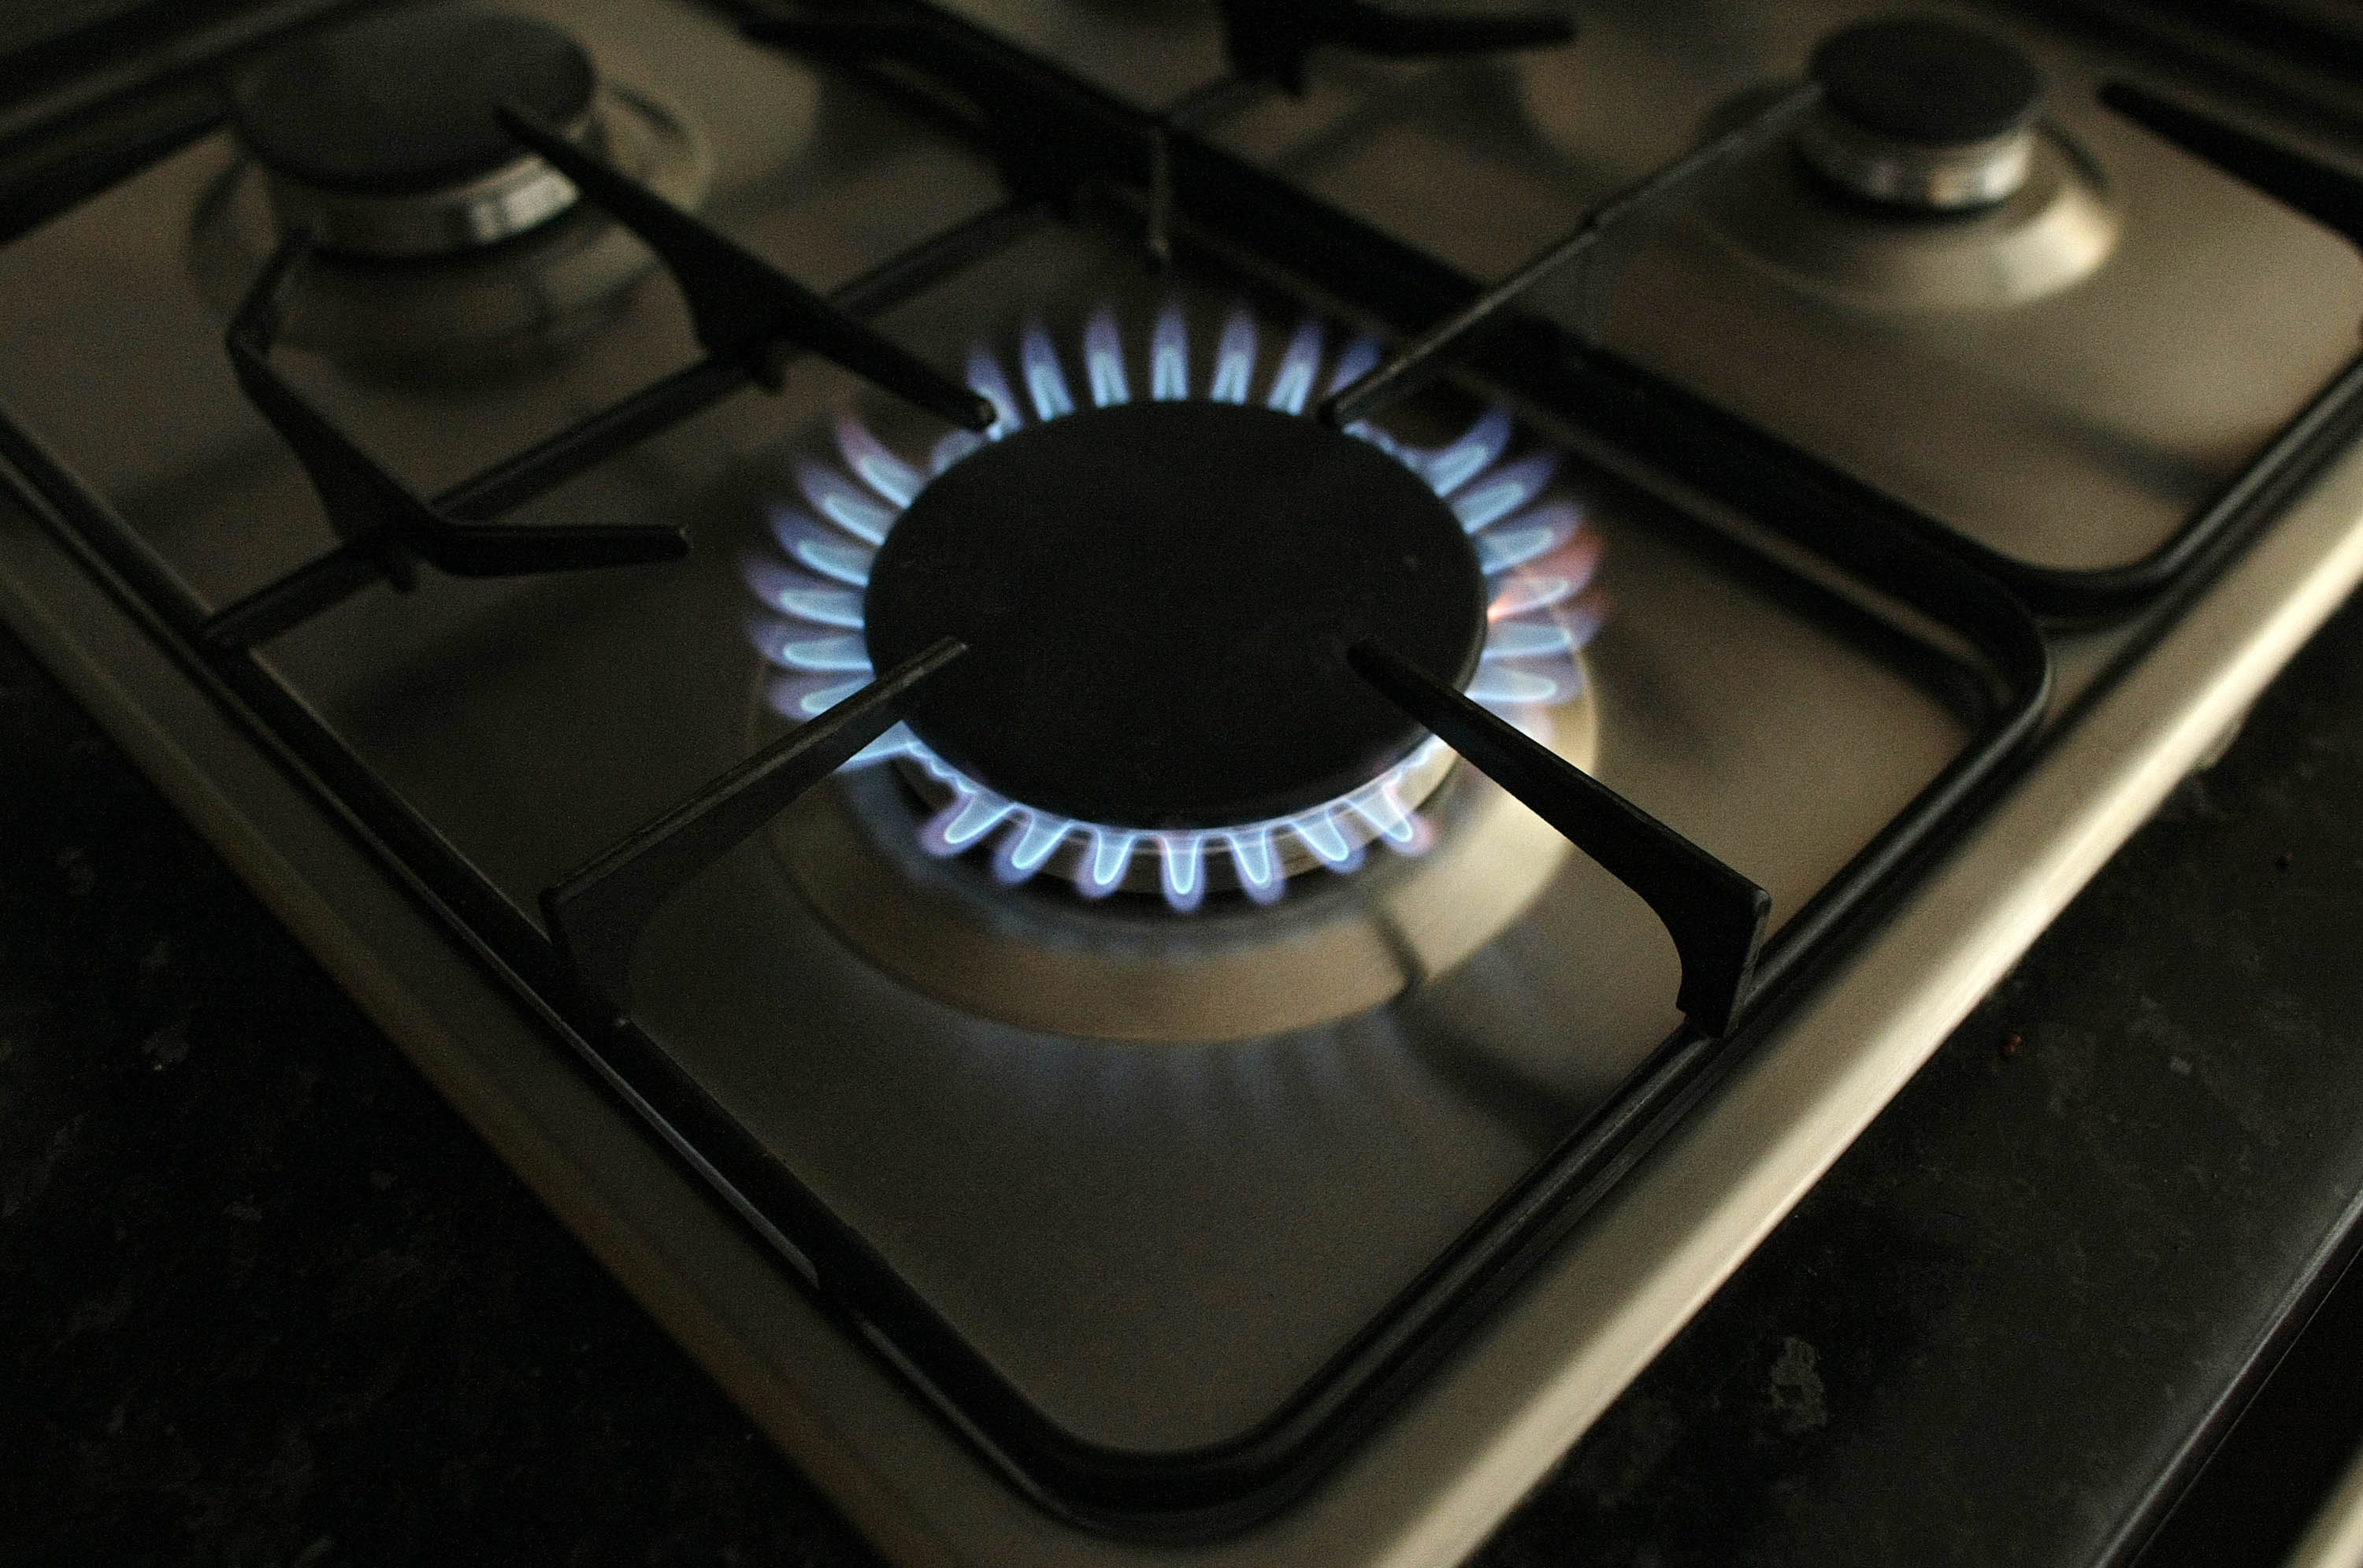 A stovetop burner turned to the highest heat setting